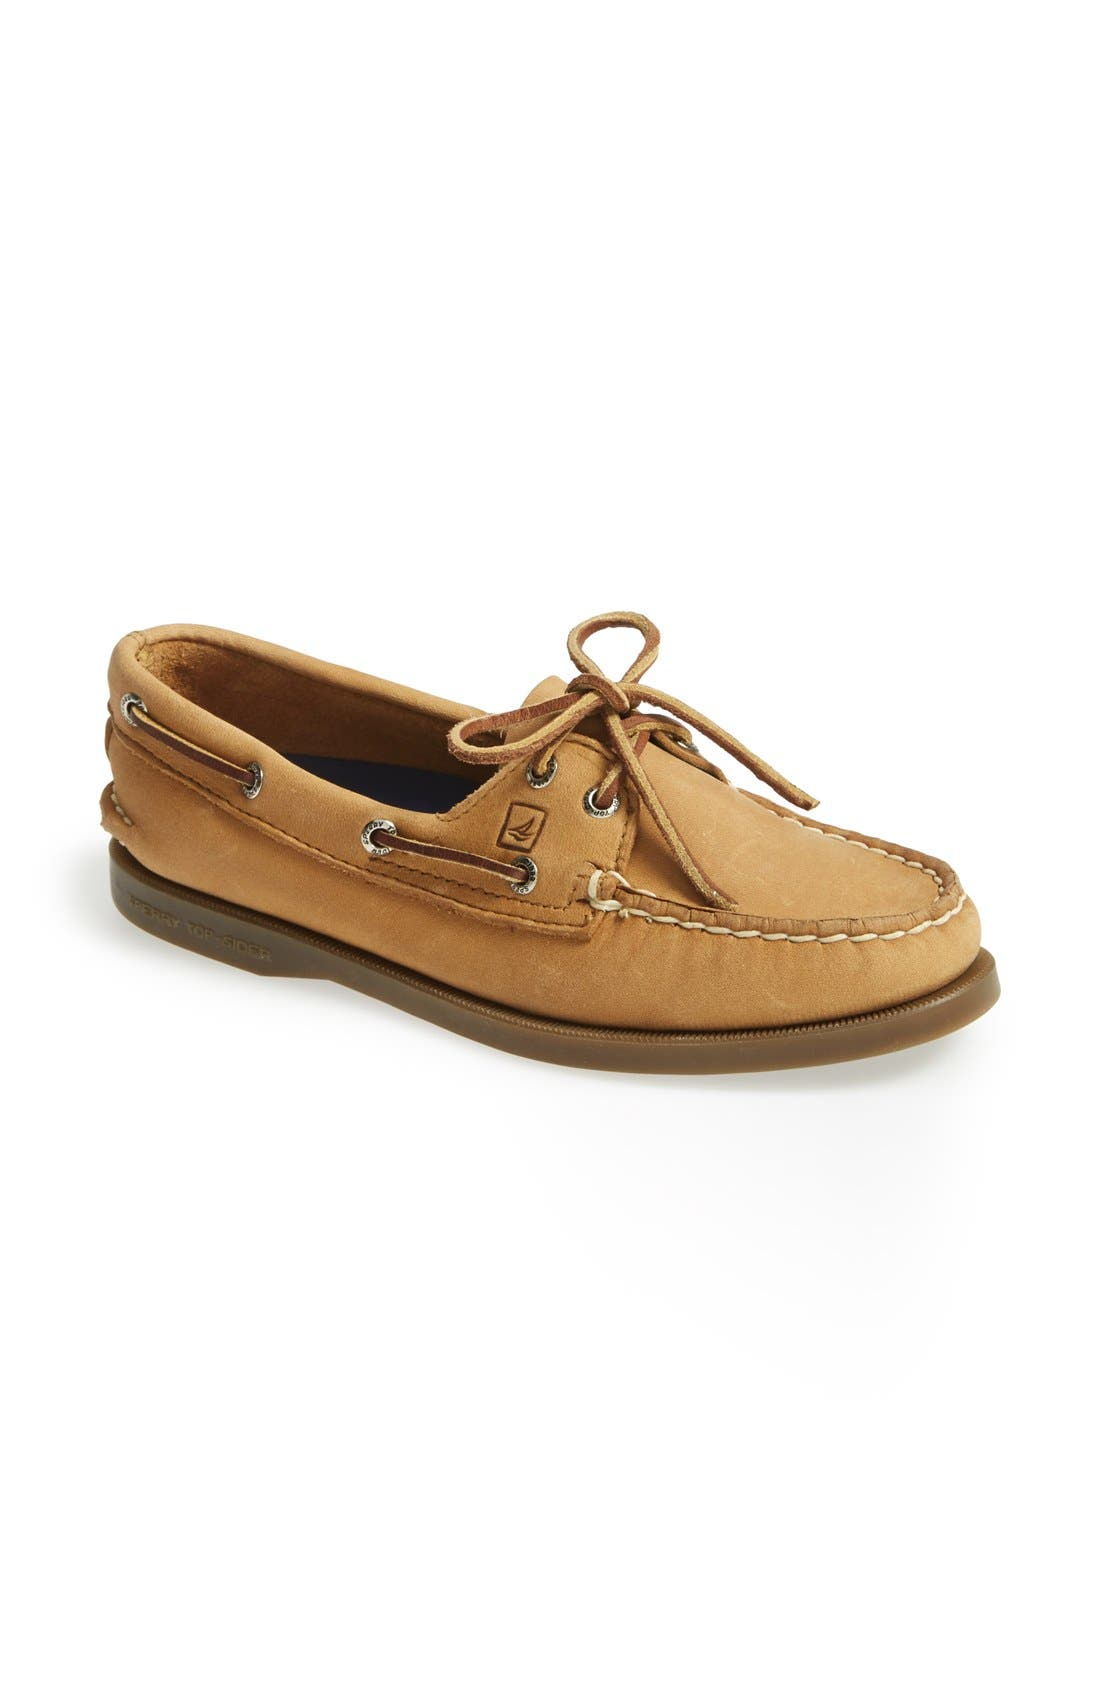 Alternate Image 2  - Sperry 'Authentic Original' Woven Boat Shoe